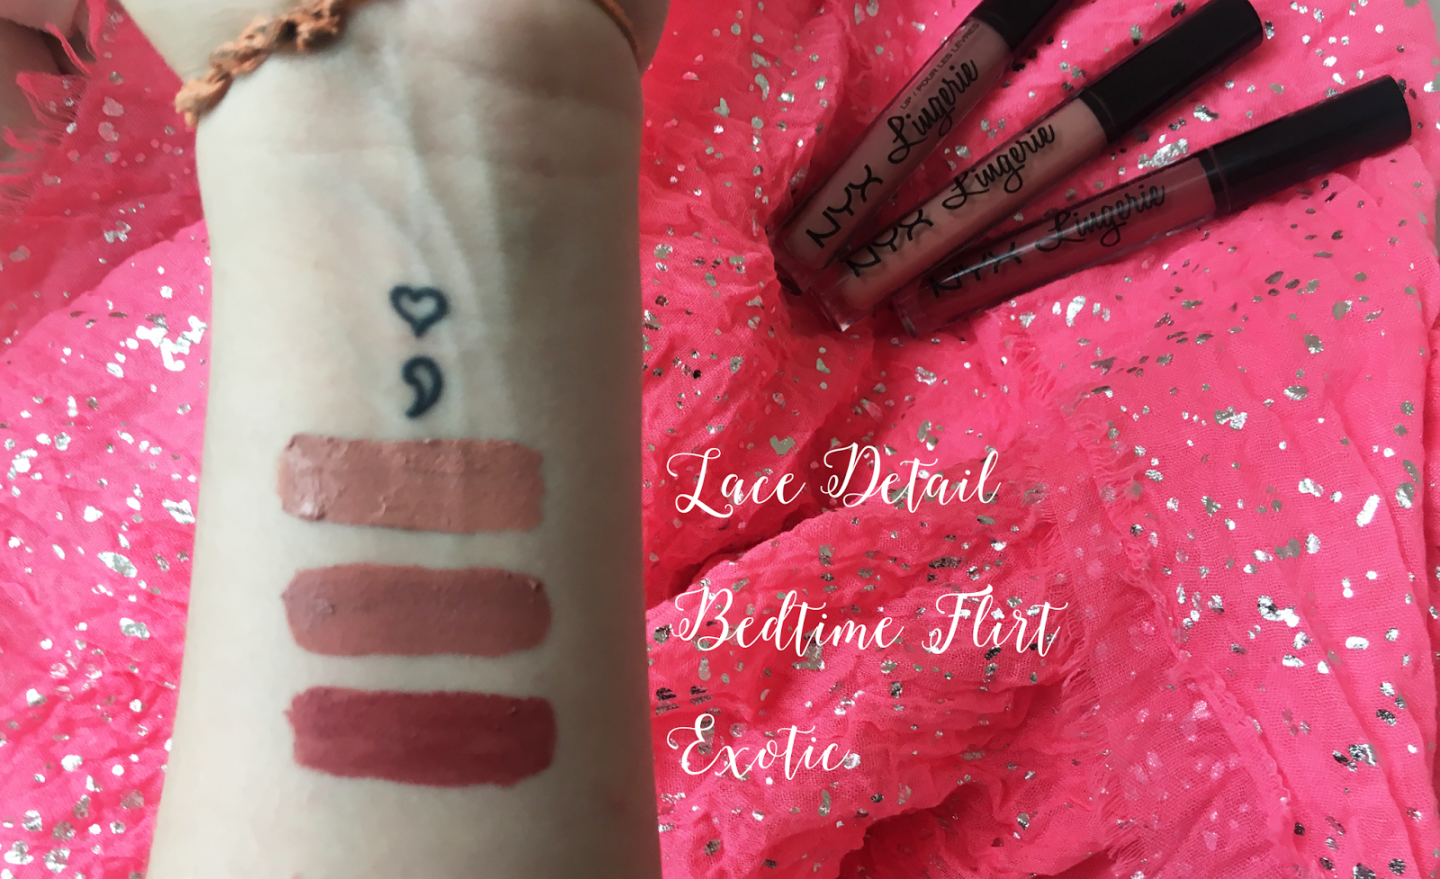 NYX Lingerie Review and Swatches; lace detail, bedtime flirt, and exotic swatches on an arm